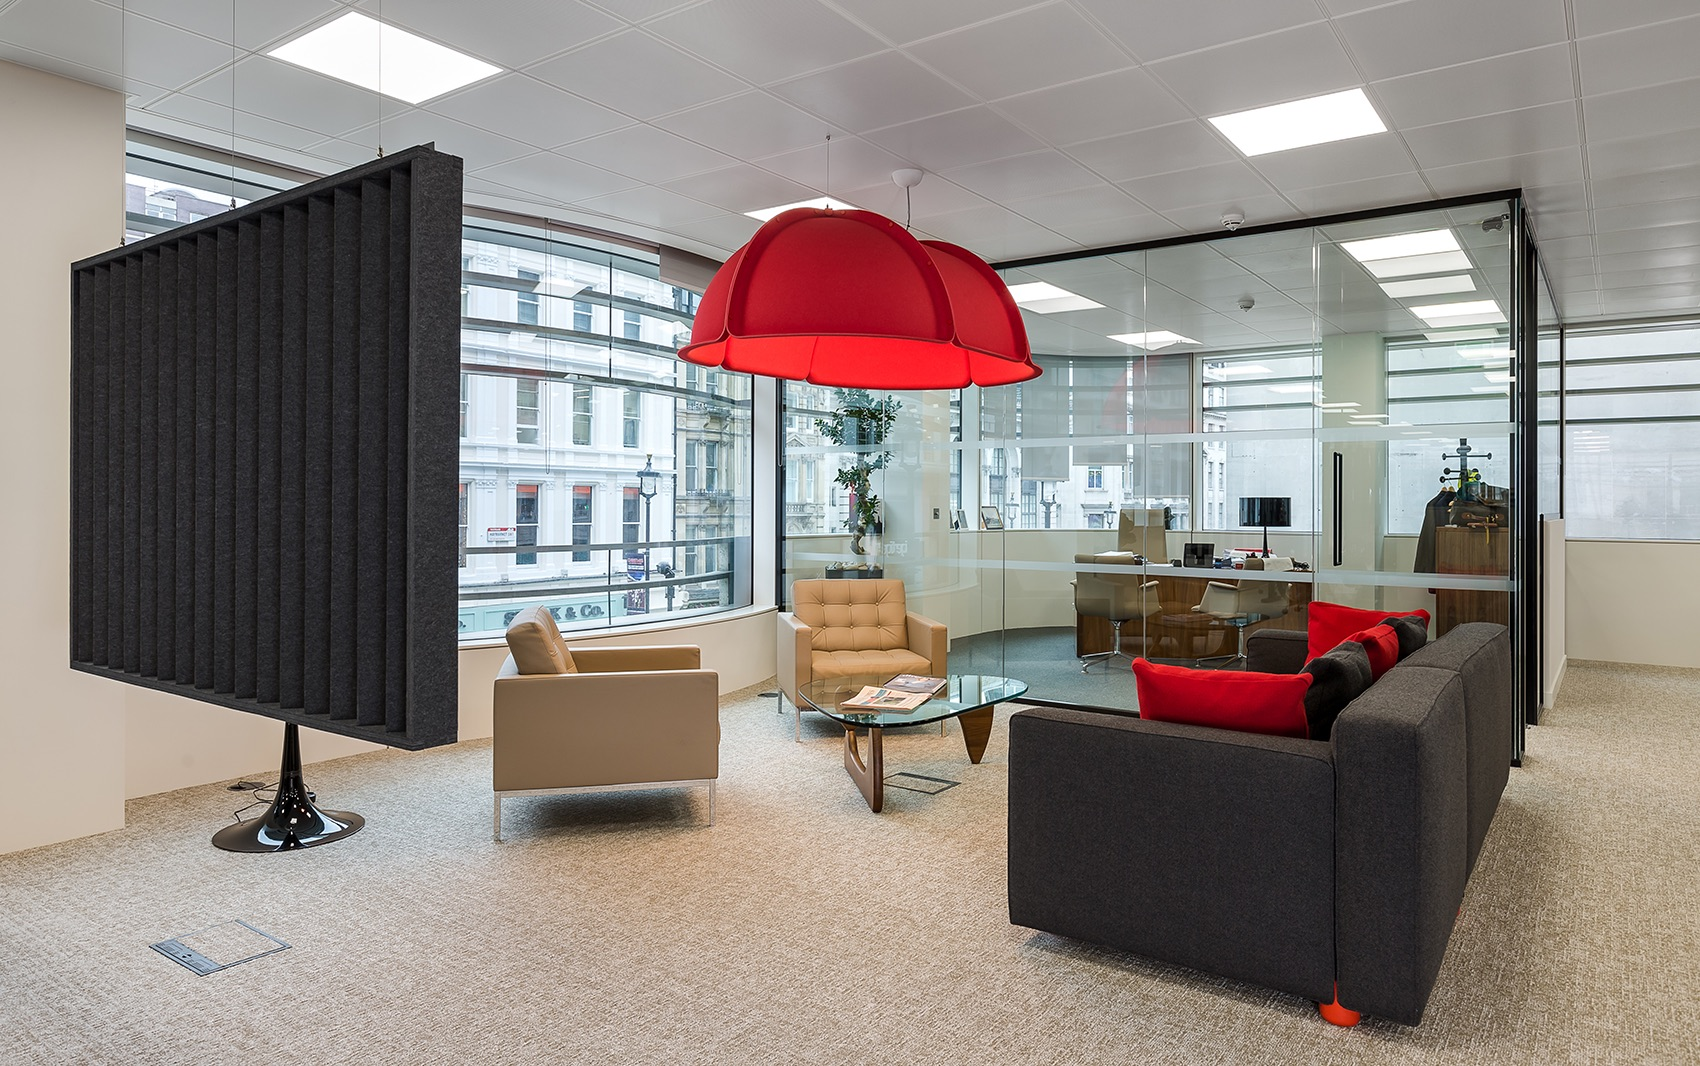 private-equity-firm-london-office-5